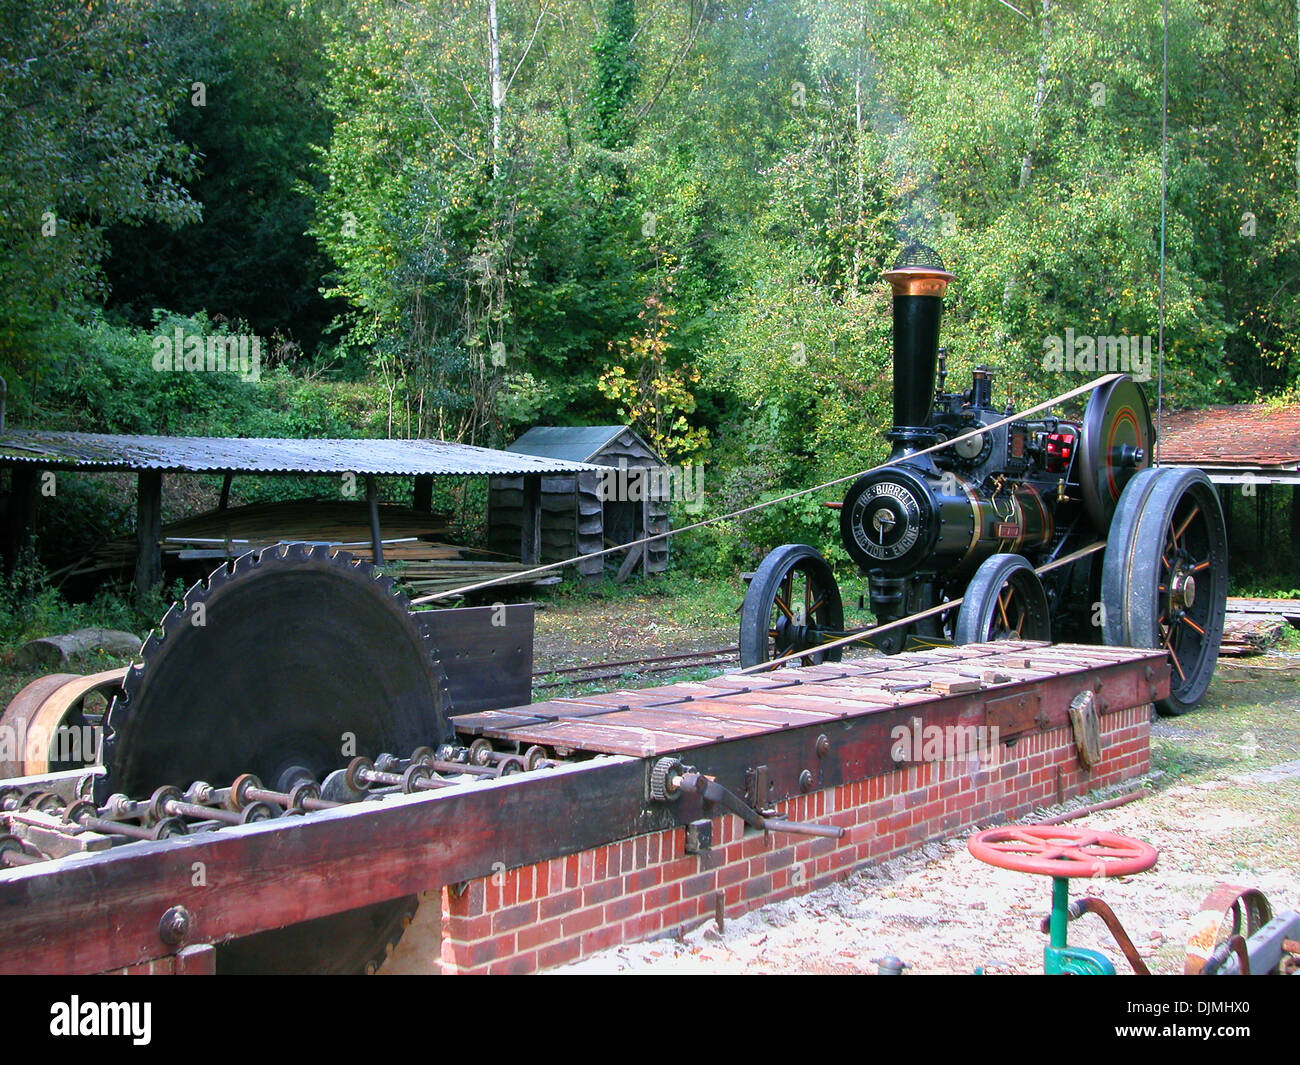 A saw bench for cutting up trees powered by a steam traction engine. - Stock Image